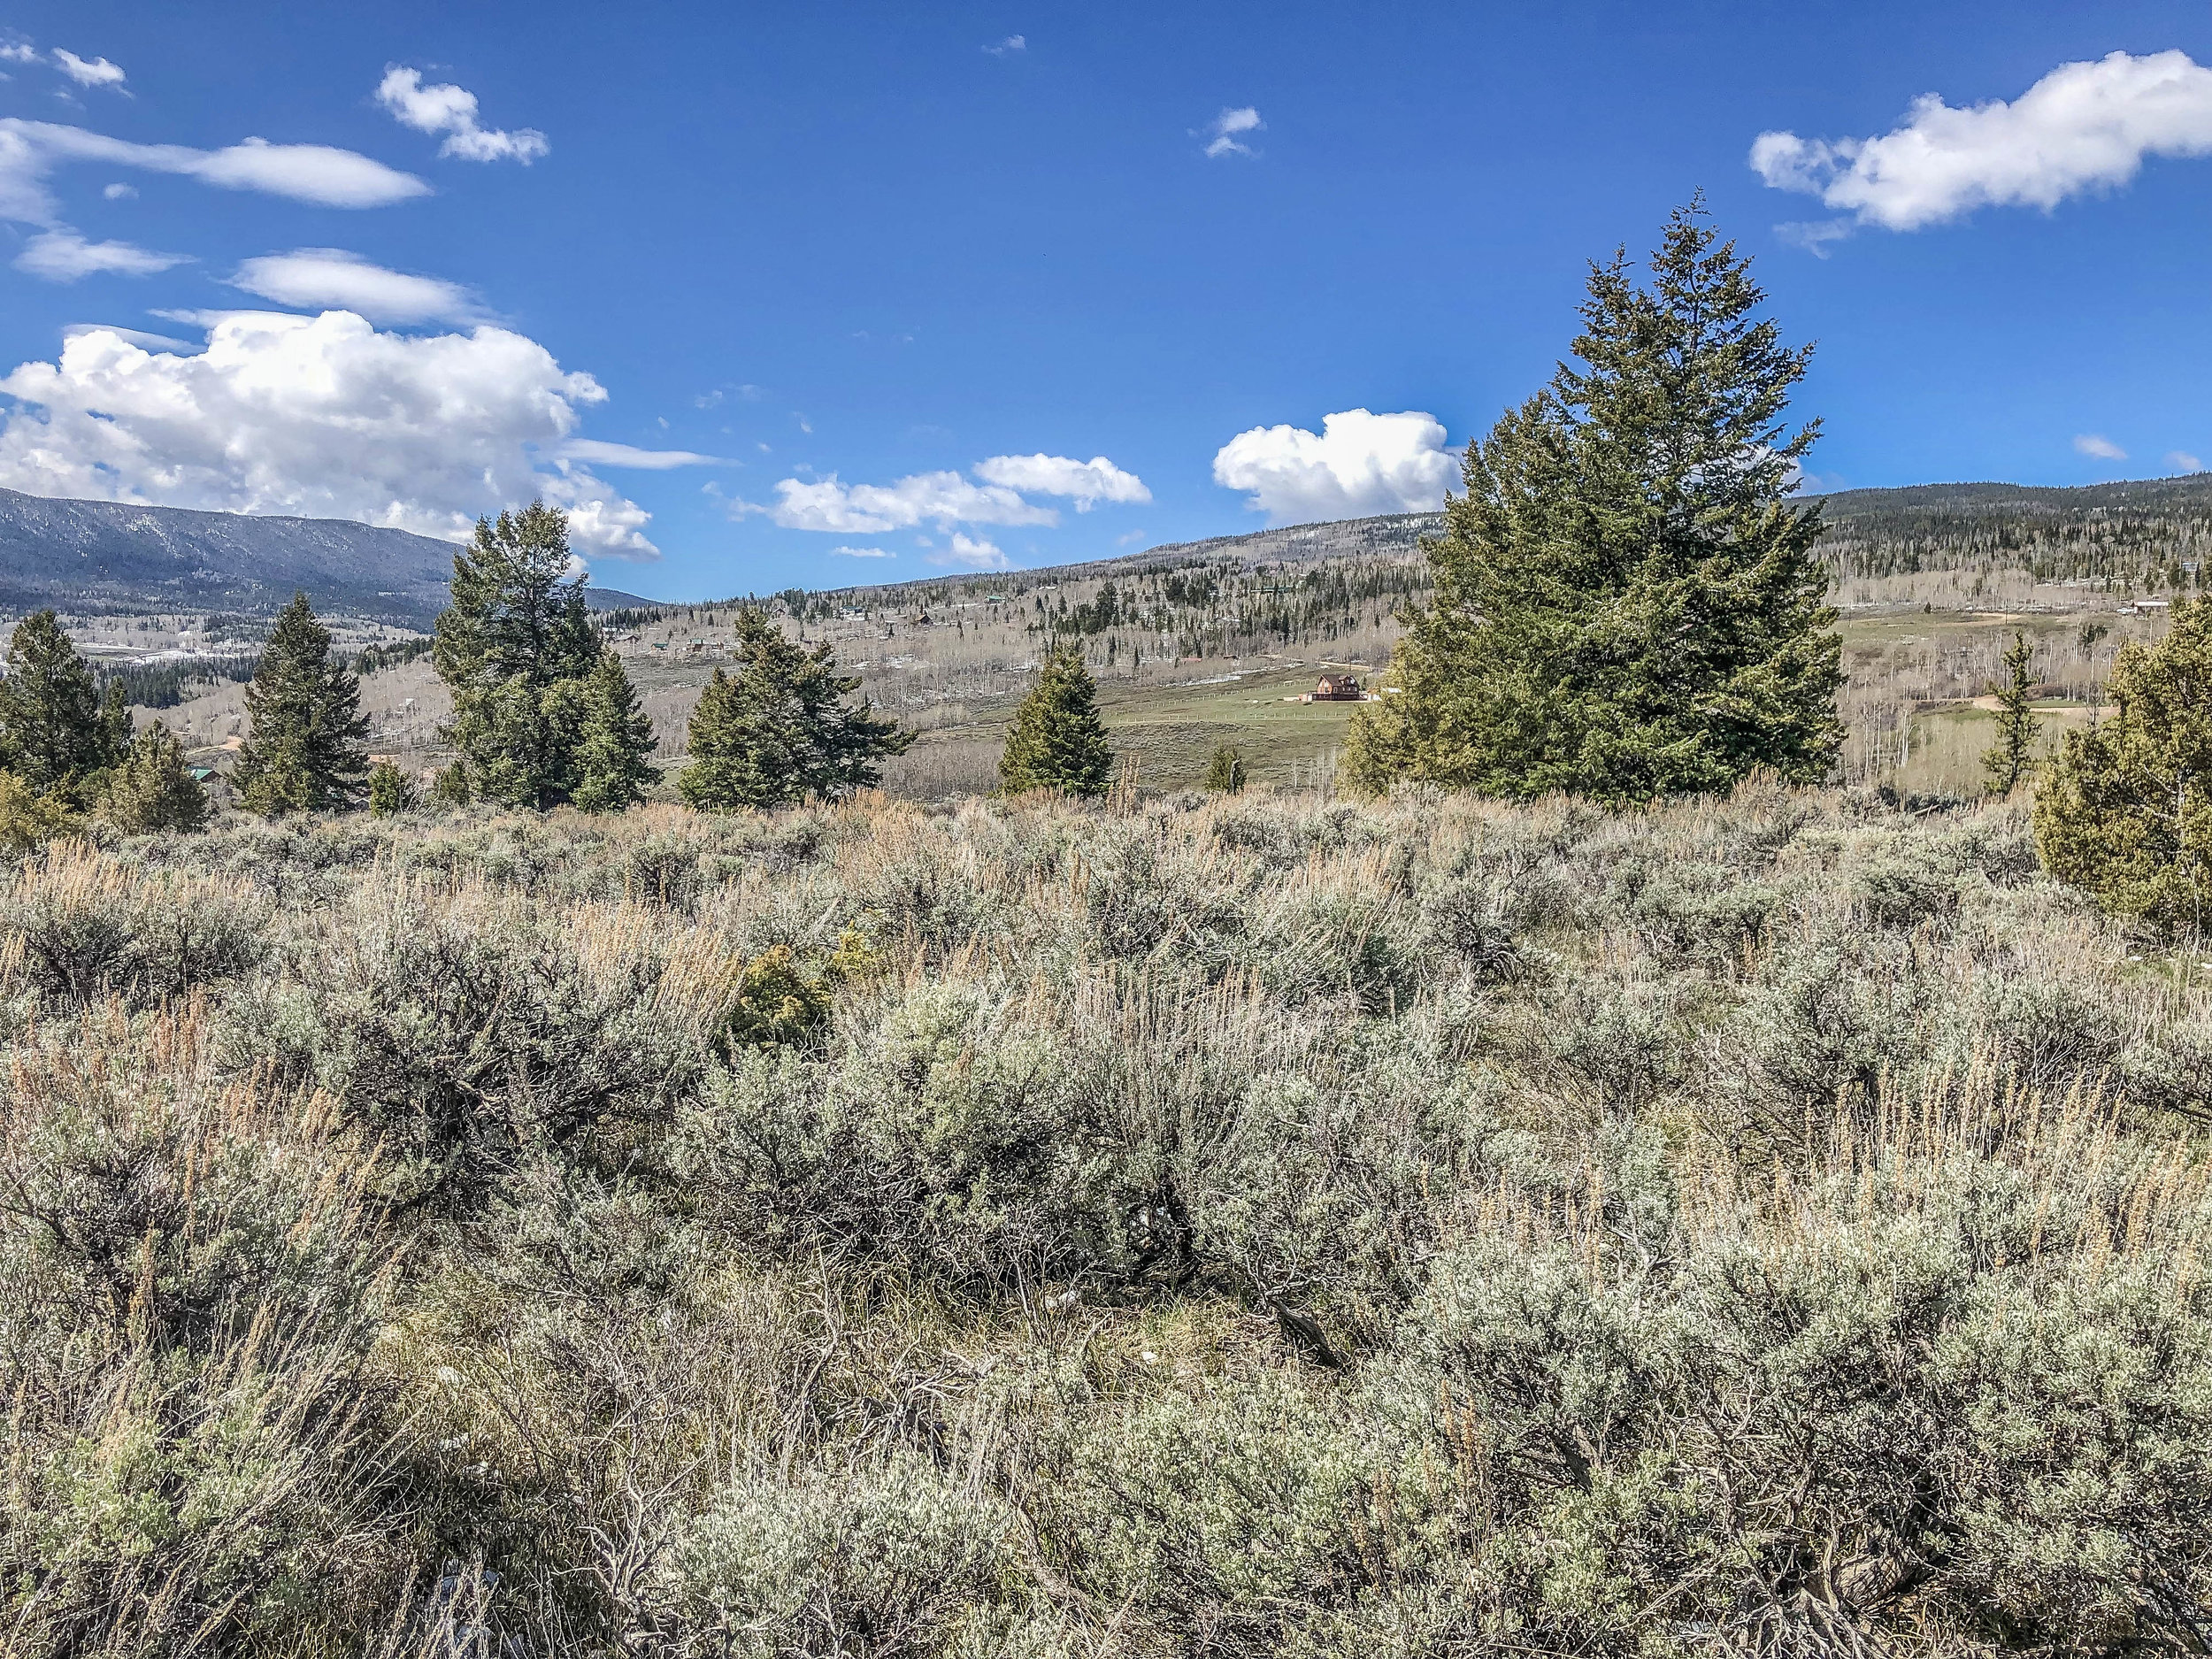 394 County Road 19 - KREMMLING - Lovely mountain acreage with lots of sunshine, great views and just minutes away from public lands. This property features a nice meadow which is flat and would make for an easy build. Listed for $45,000